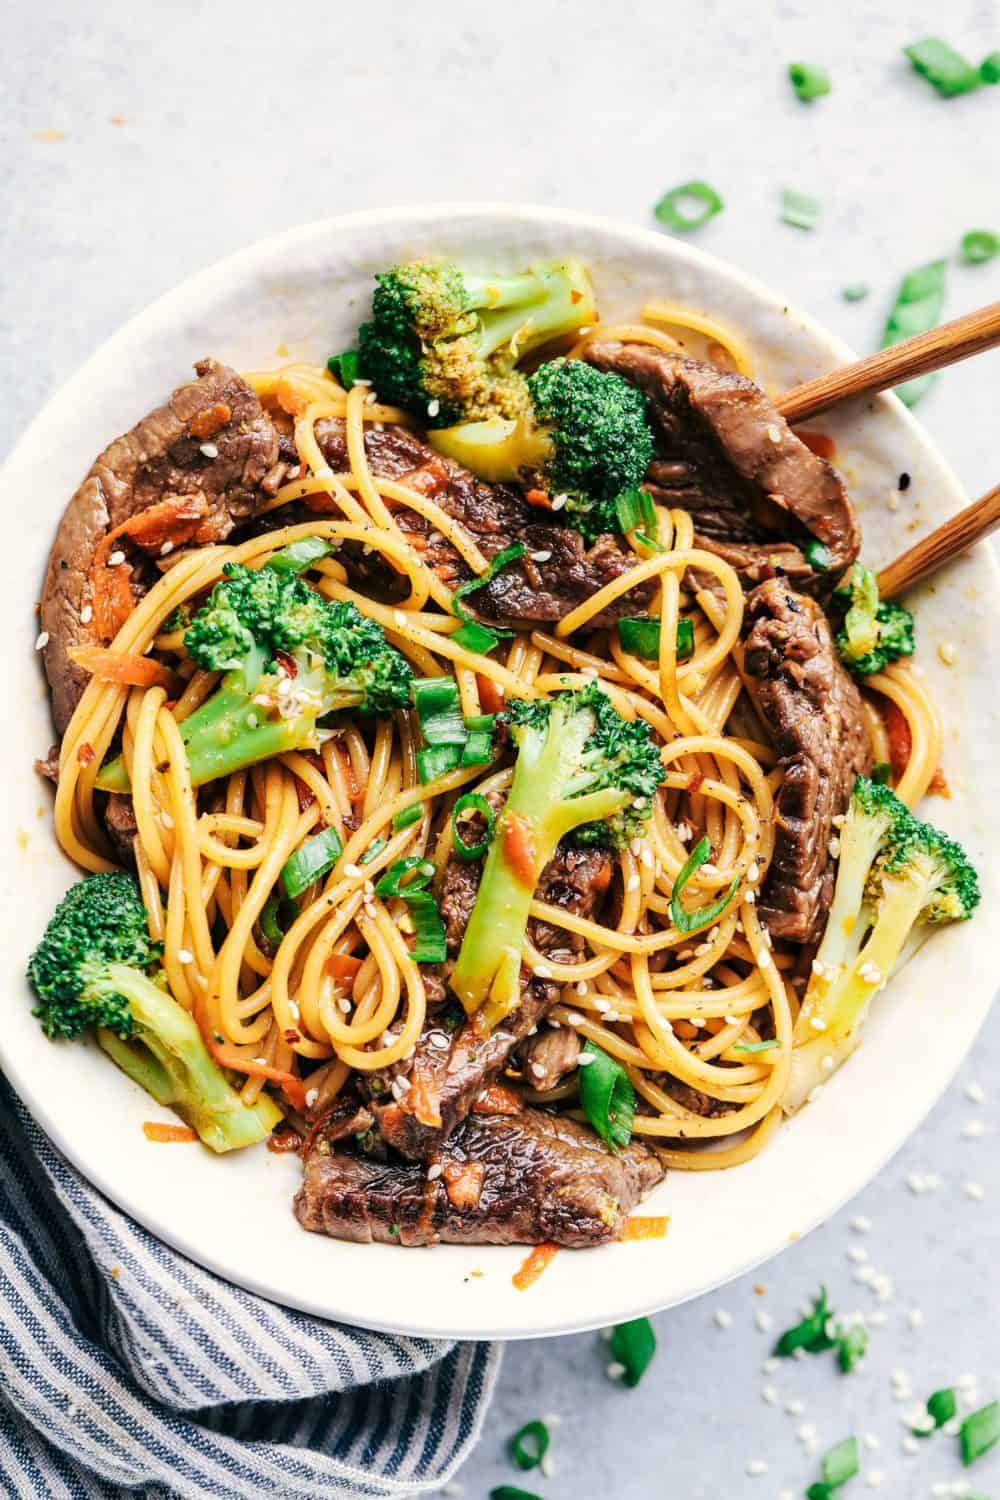 20-Minute Garlic Beef and Broccoli Lo Mein